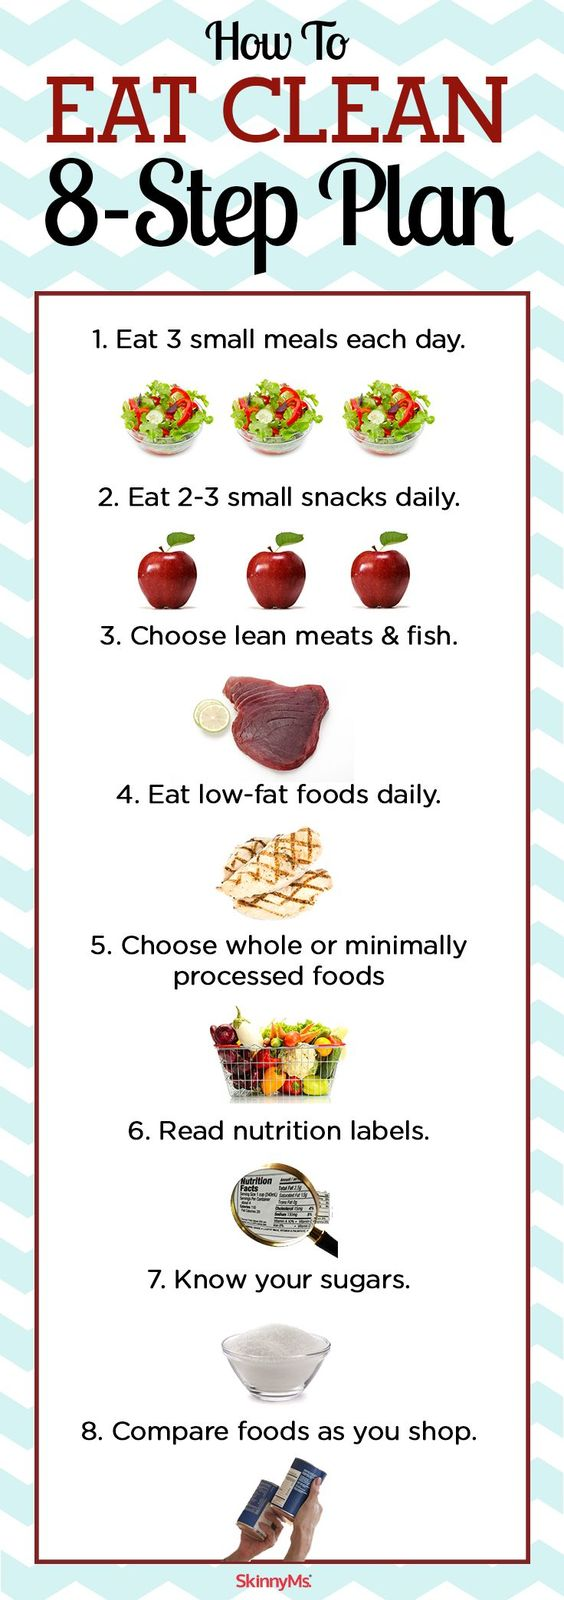 Simple How to Eat Clean 8-Step Plan: